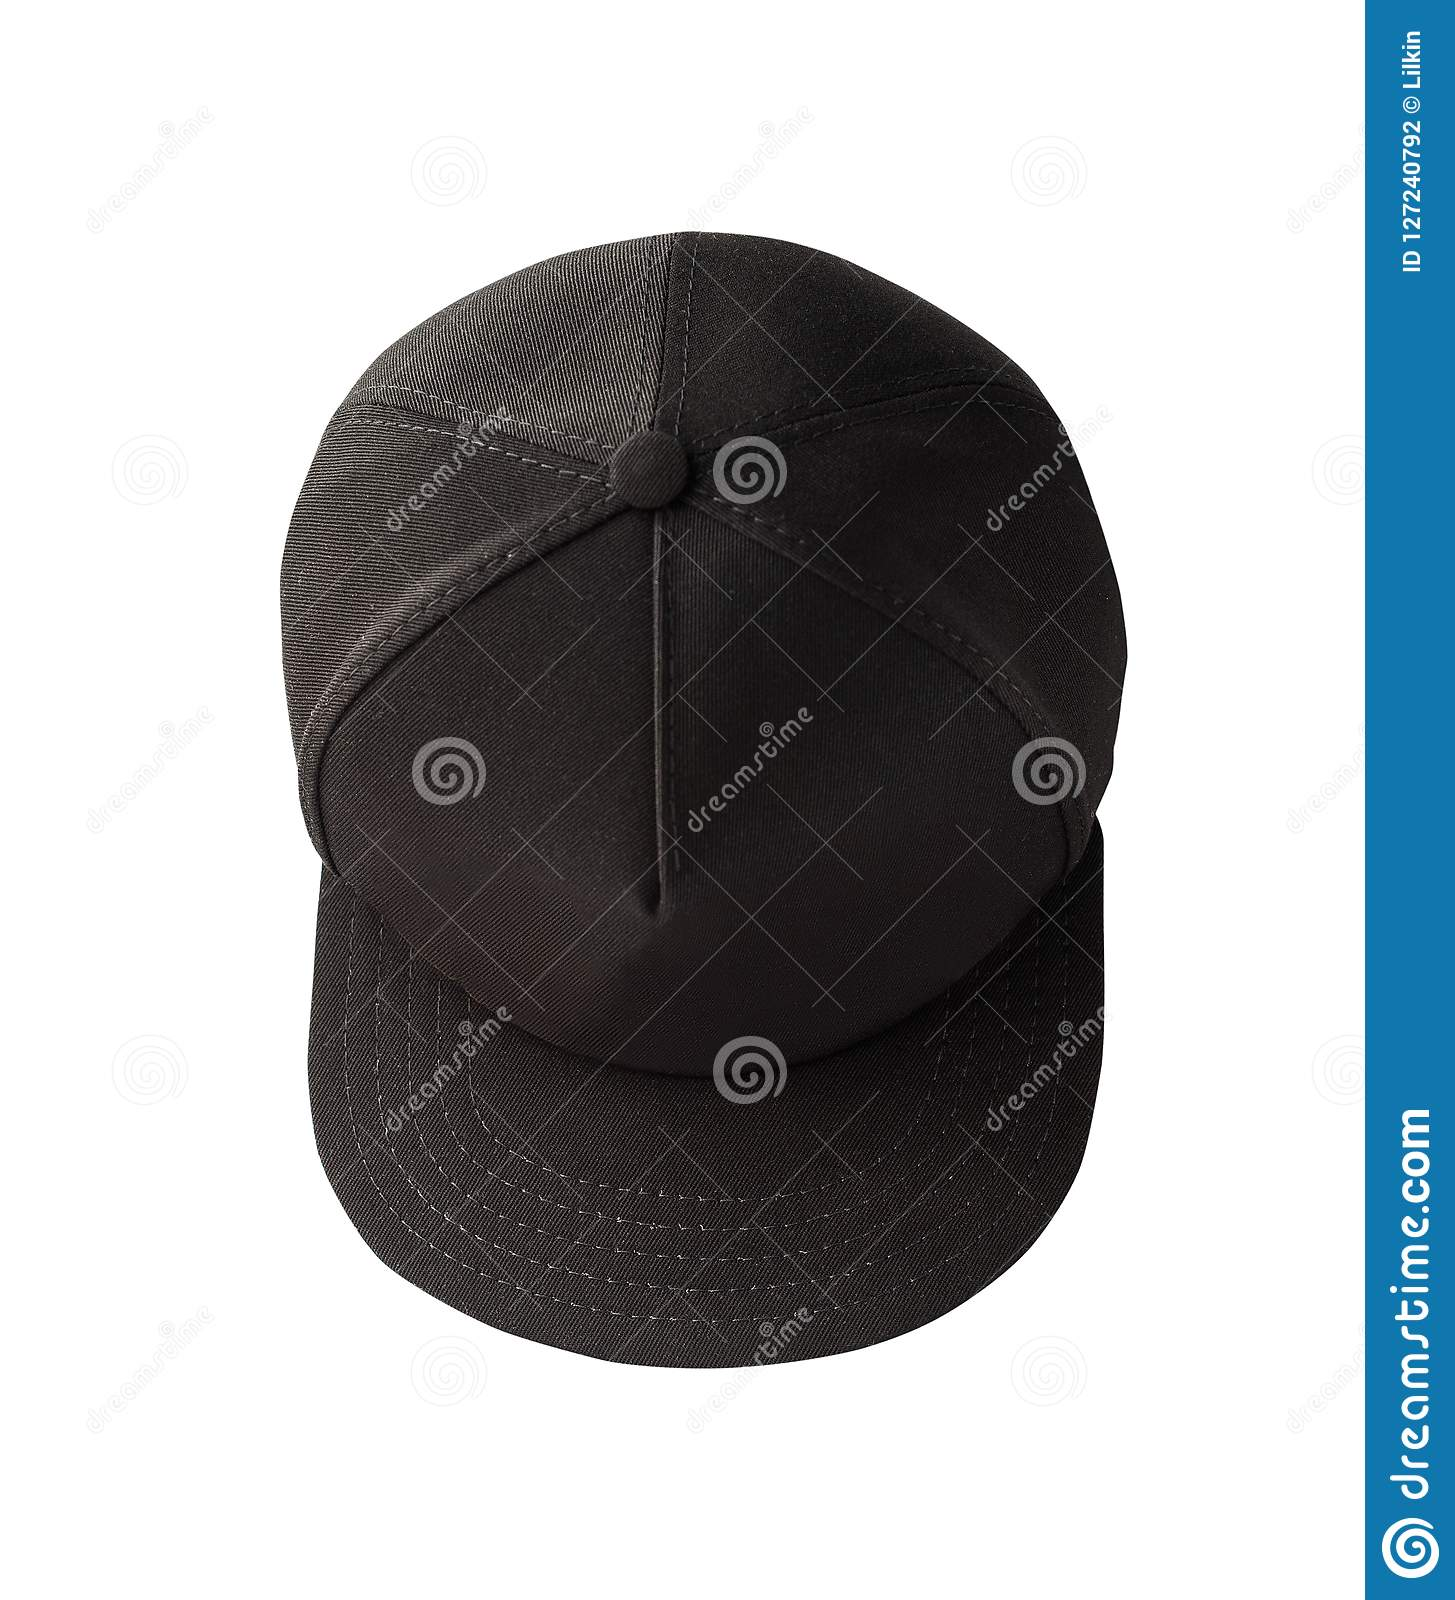 ae295160 Top view of black snapback cap isolated on white background. Blank baseball  cap or trucker hat